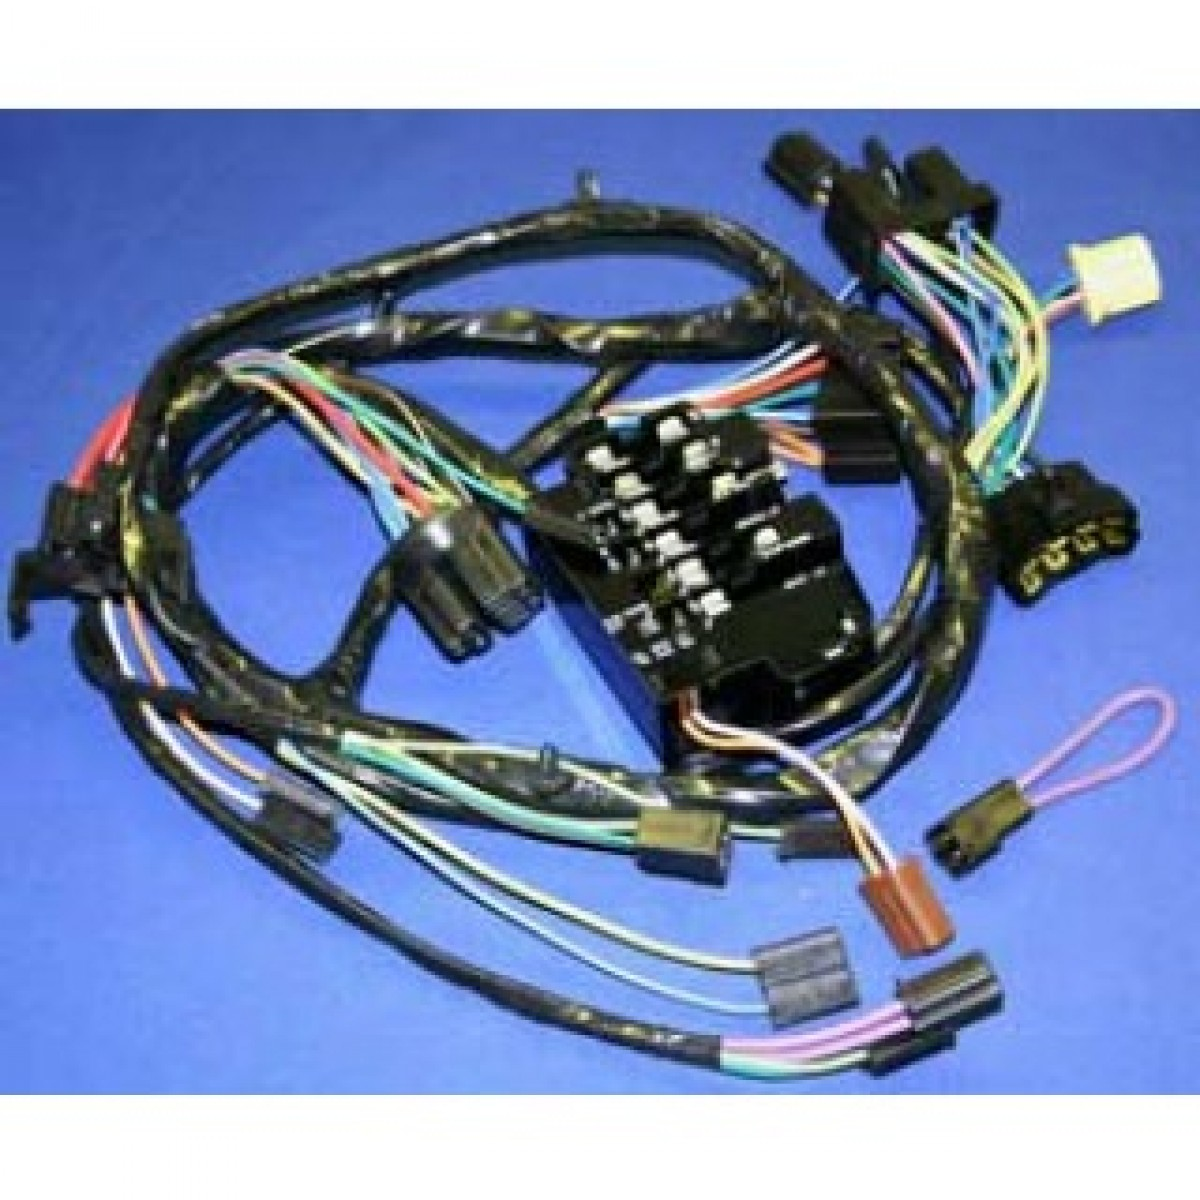 69 chevy c10 wiring harness  69  free engine image for Chevy Wiring Harness Diagram Chevy Wiring Harness Diagram